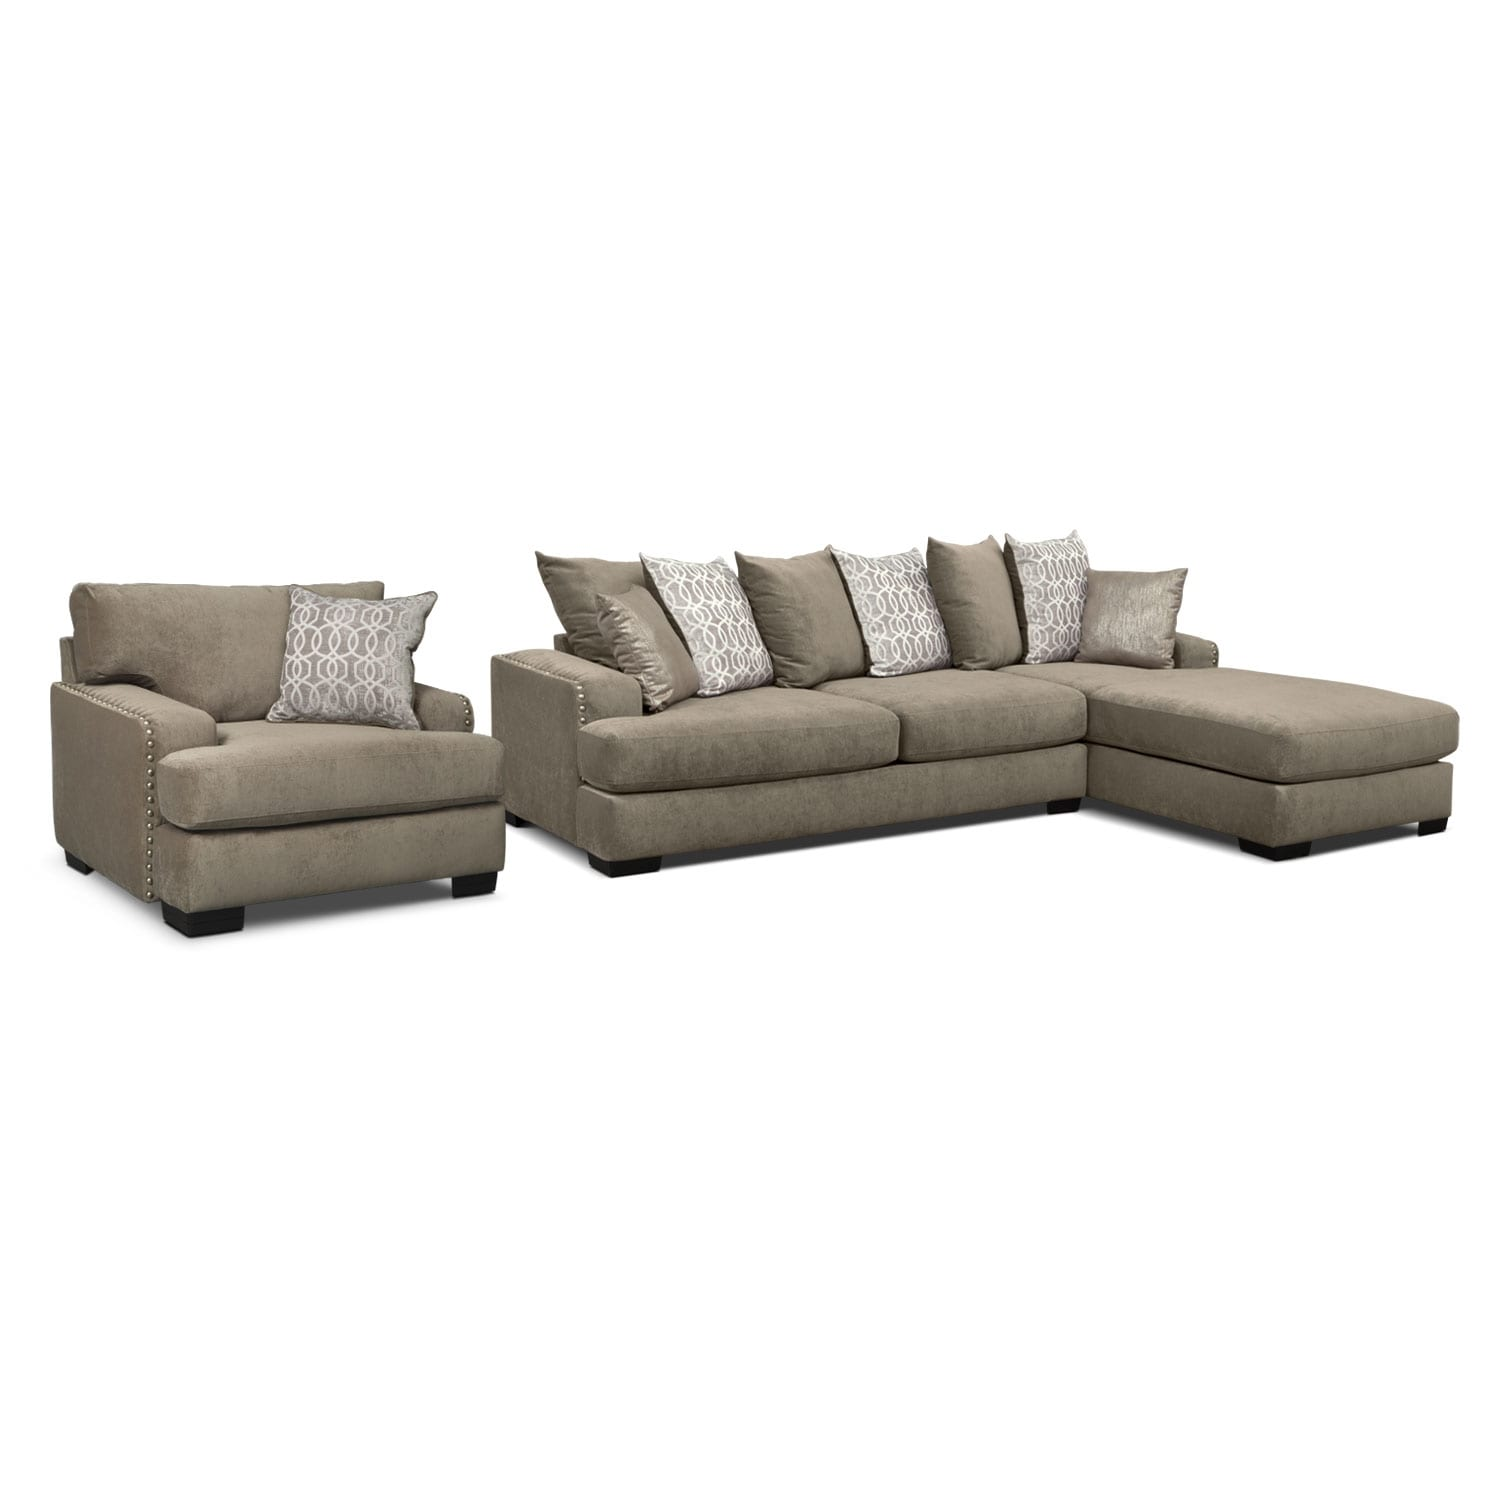 Living Room Furniture - Tempo 2 Pc. Sectional with Right-Facing Chaise w/ Chair